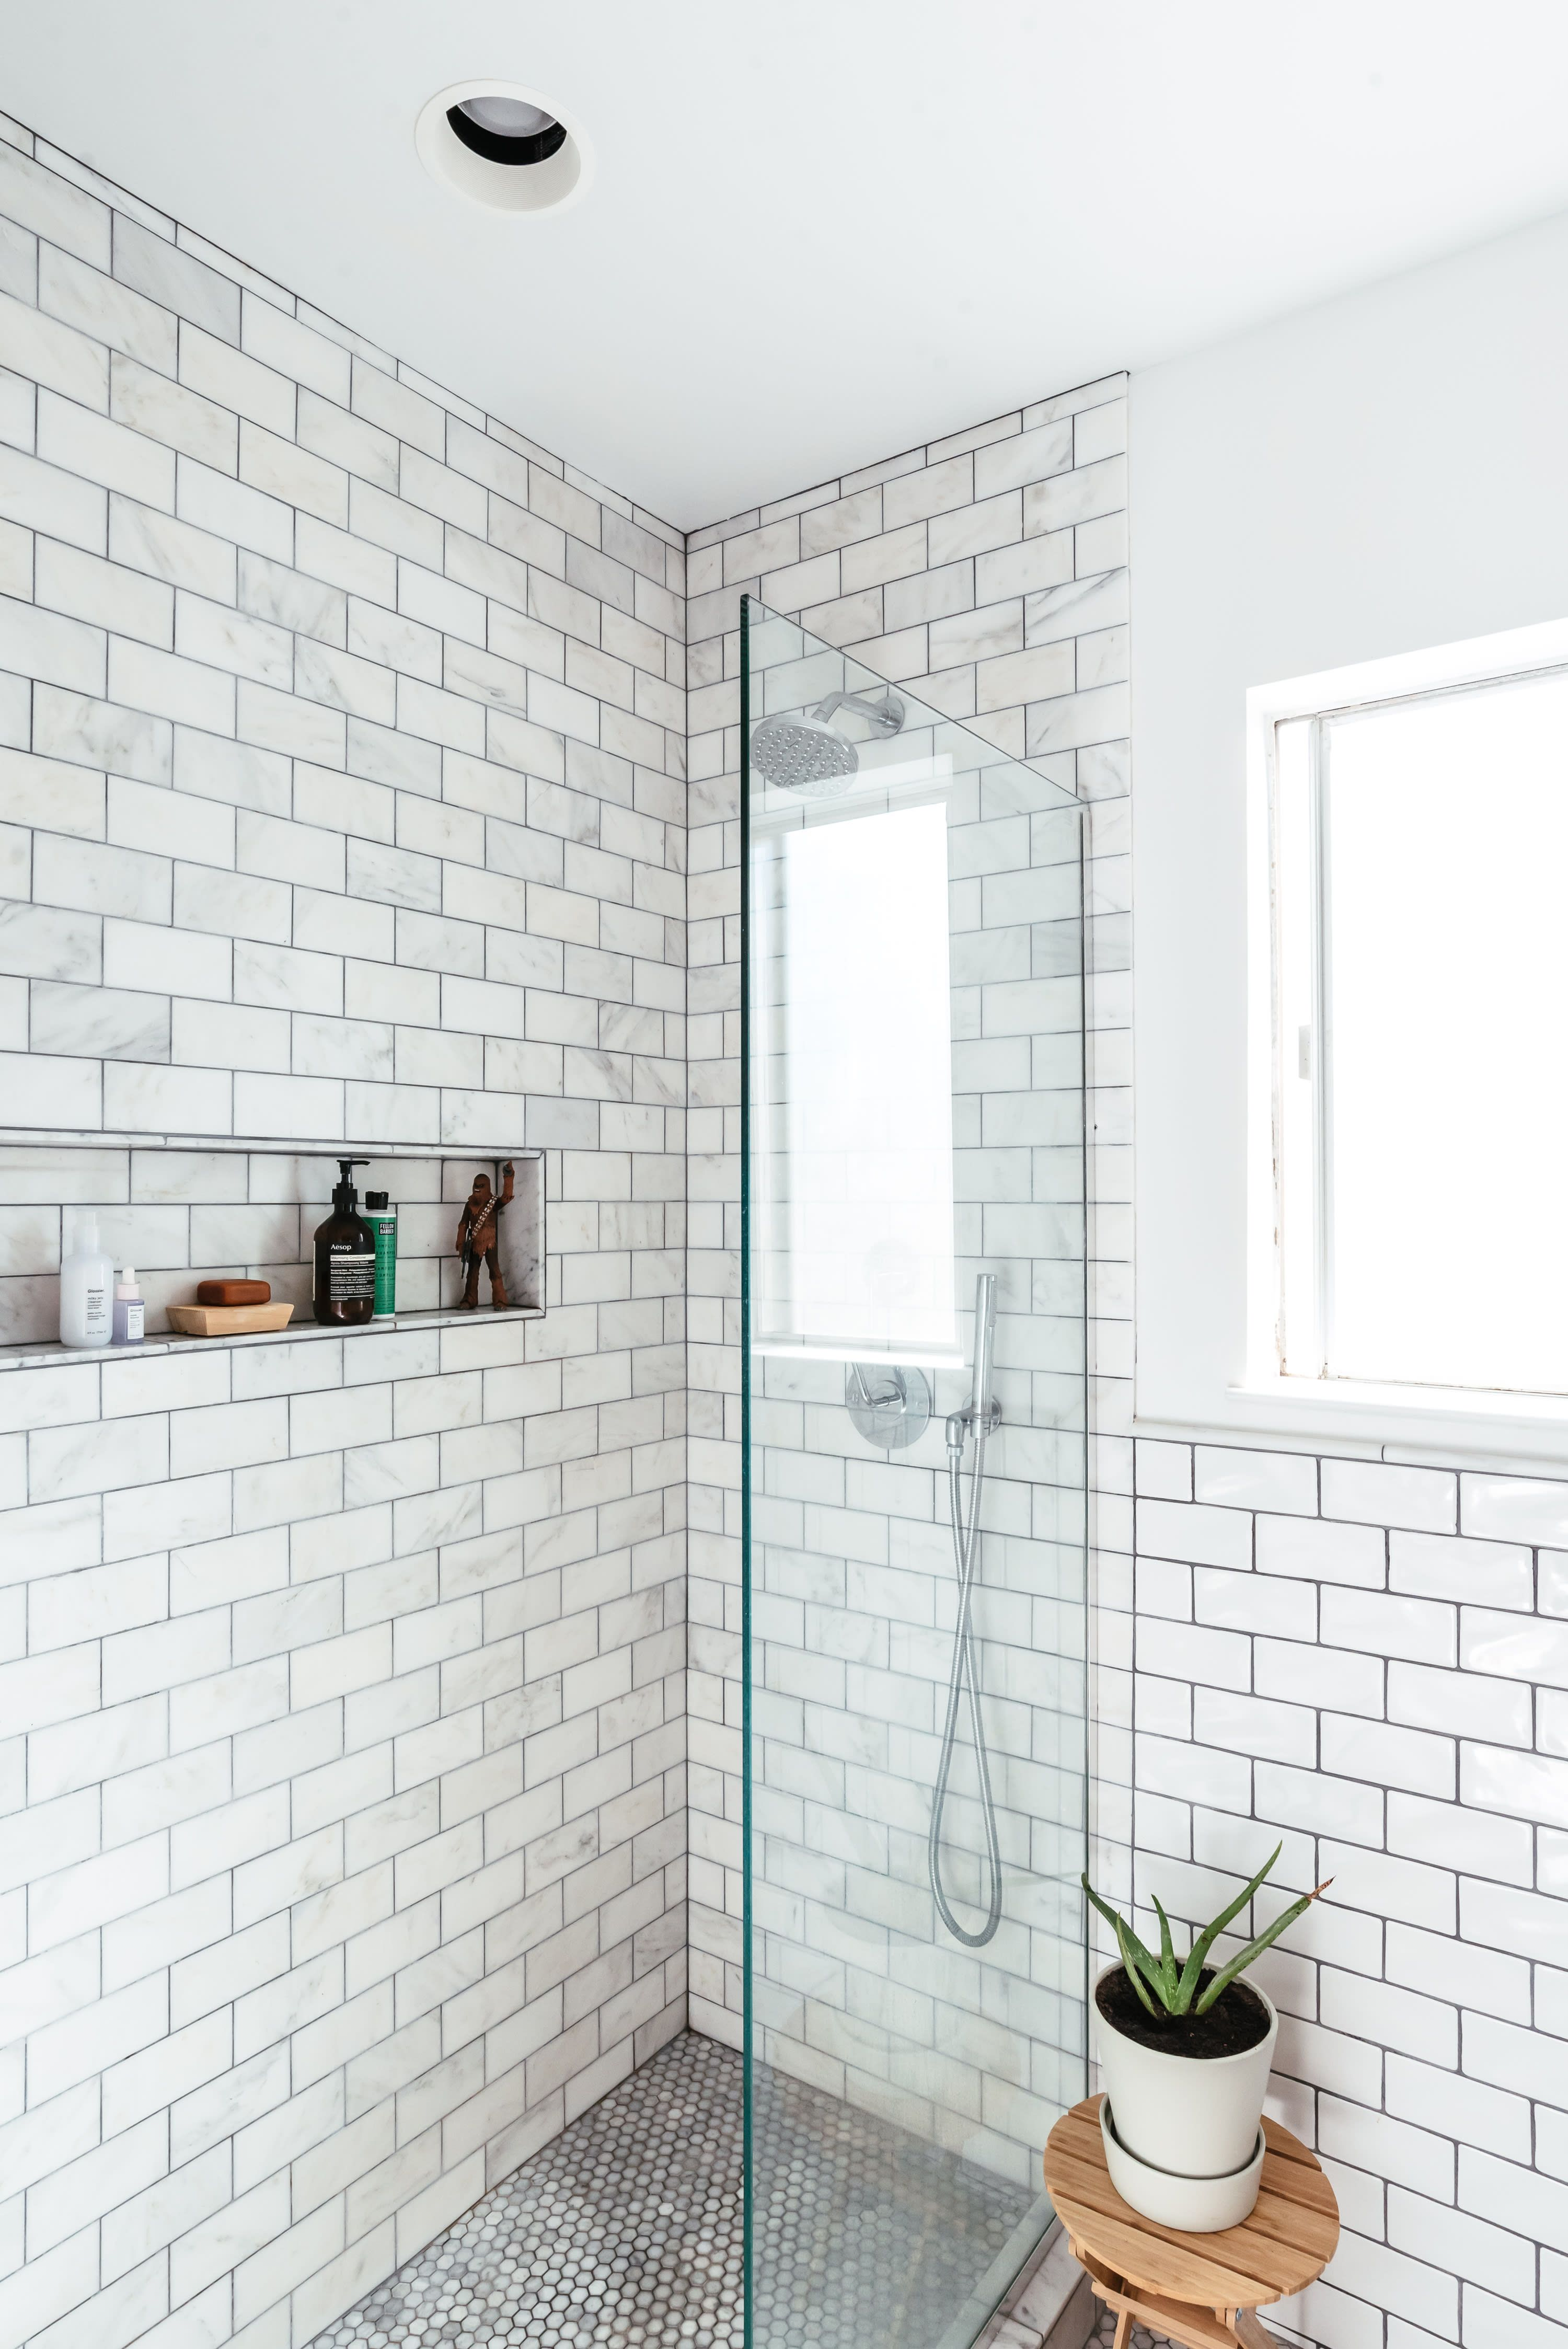 50 Gorgeous Bathroom Tile Ideas To Get Your Design Juices Flowing #bathroomtileshowers